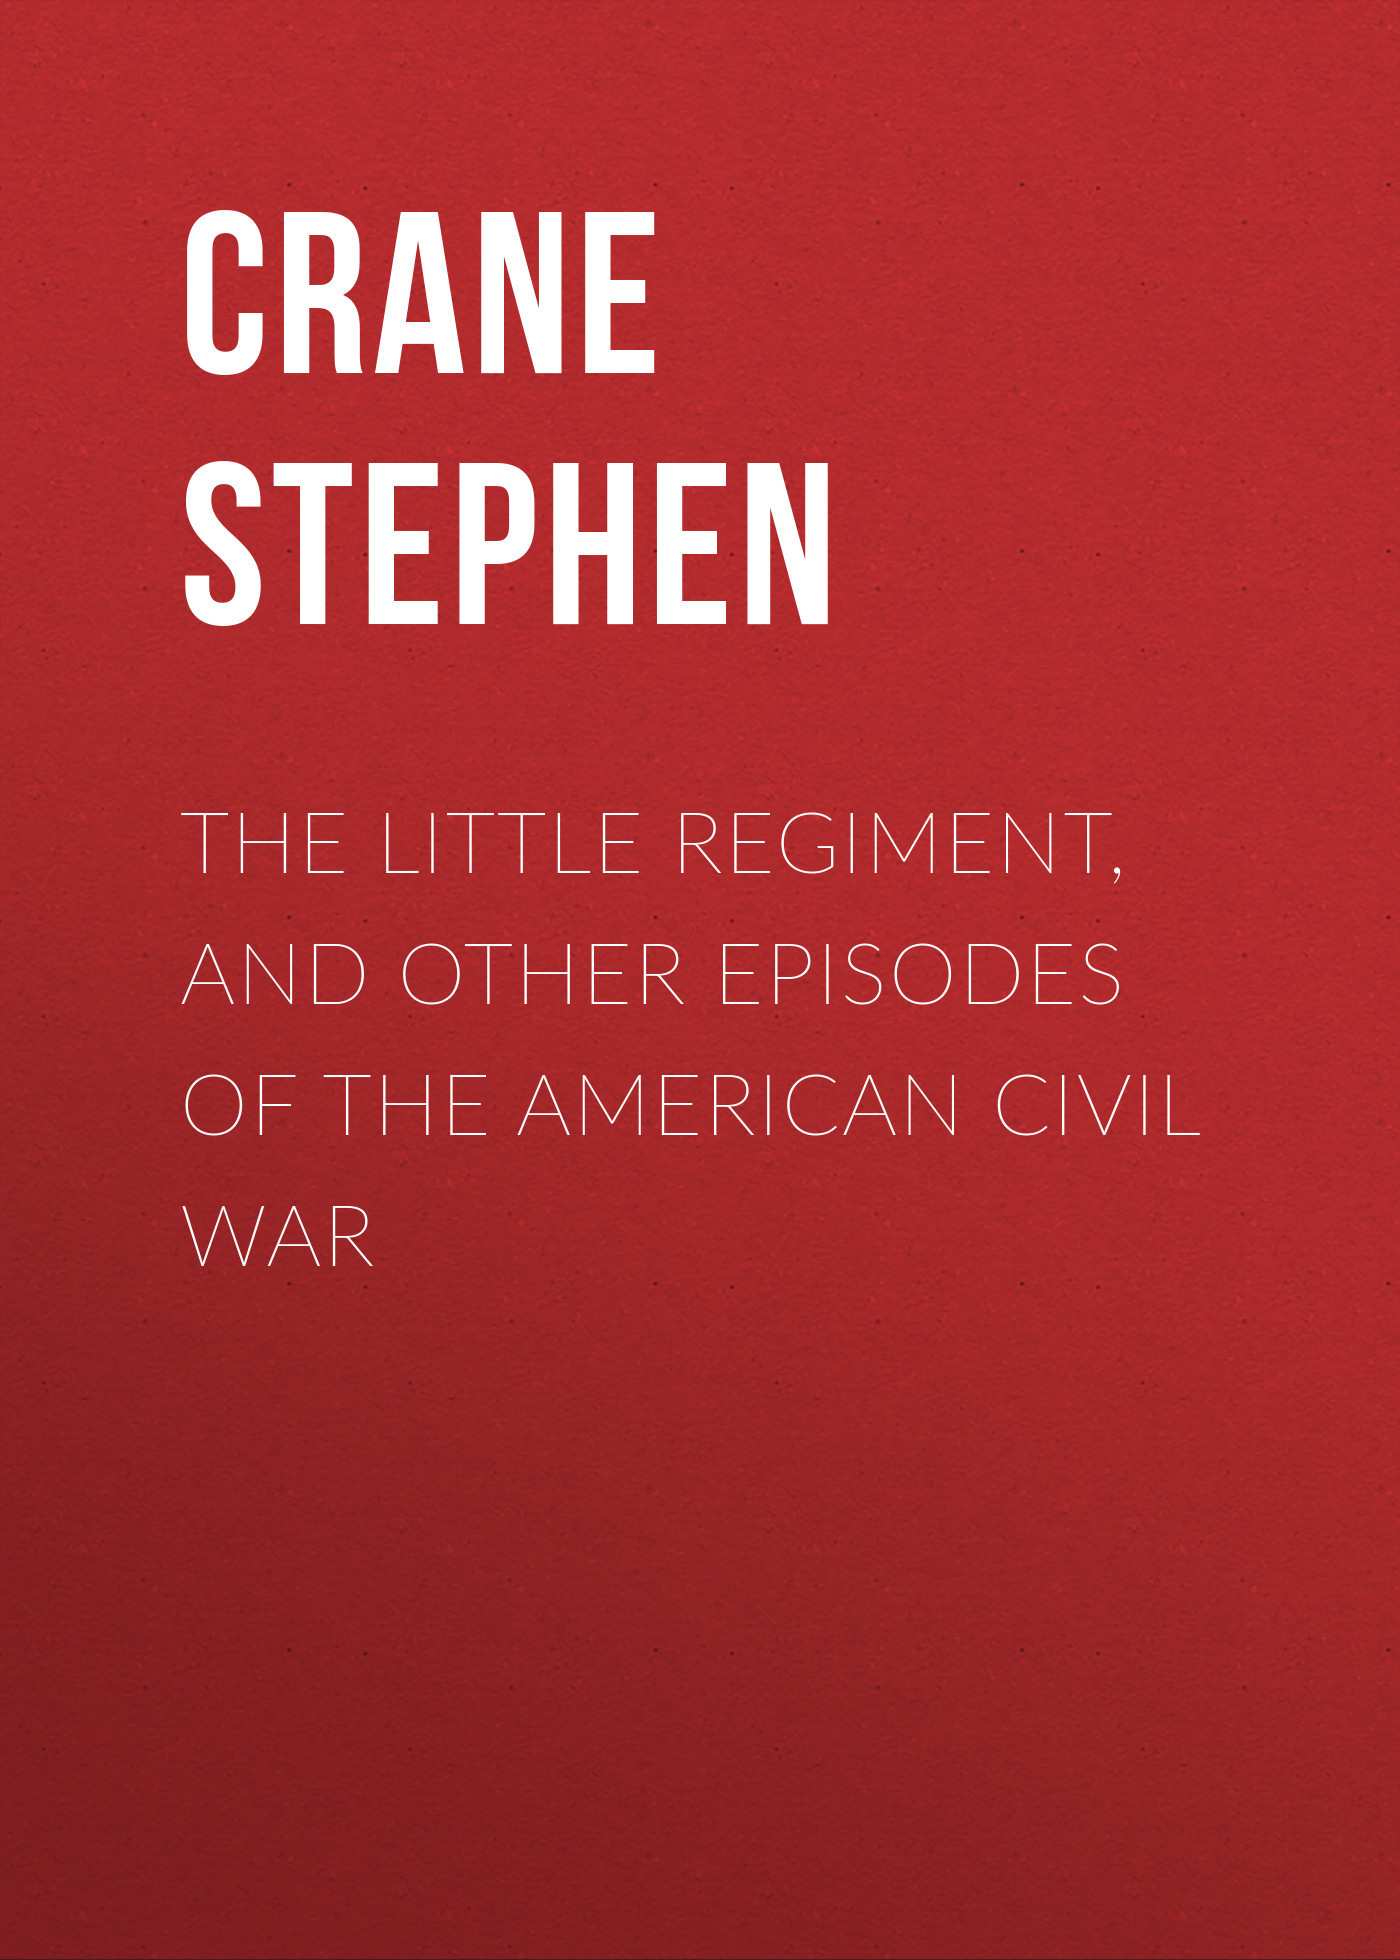 Crane Stephen The Little Regiment, and Other Episodes of the American Civil War the american civil war